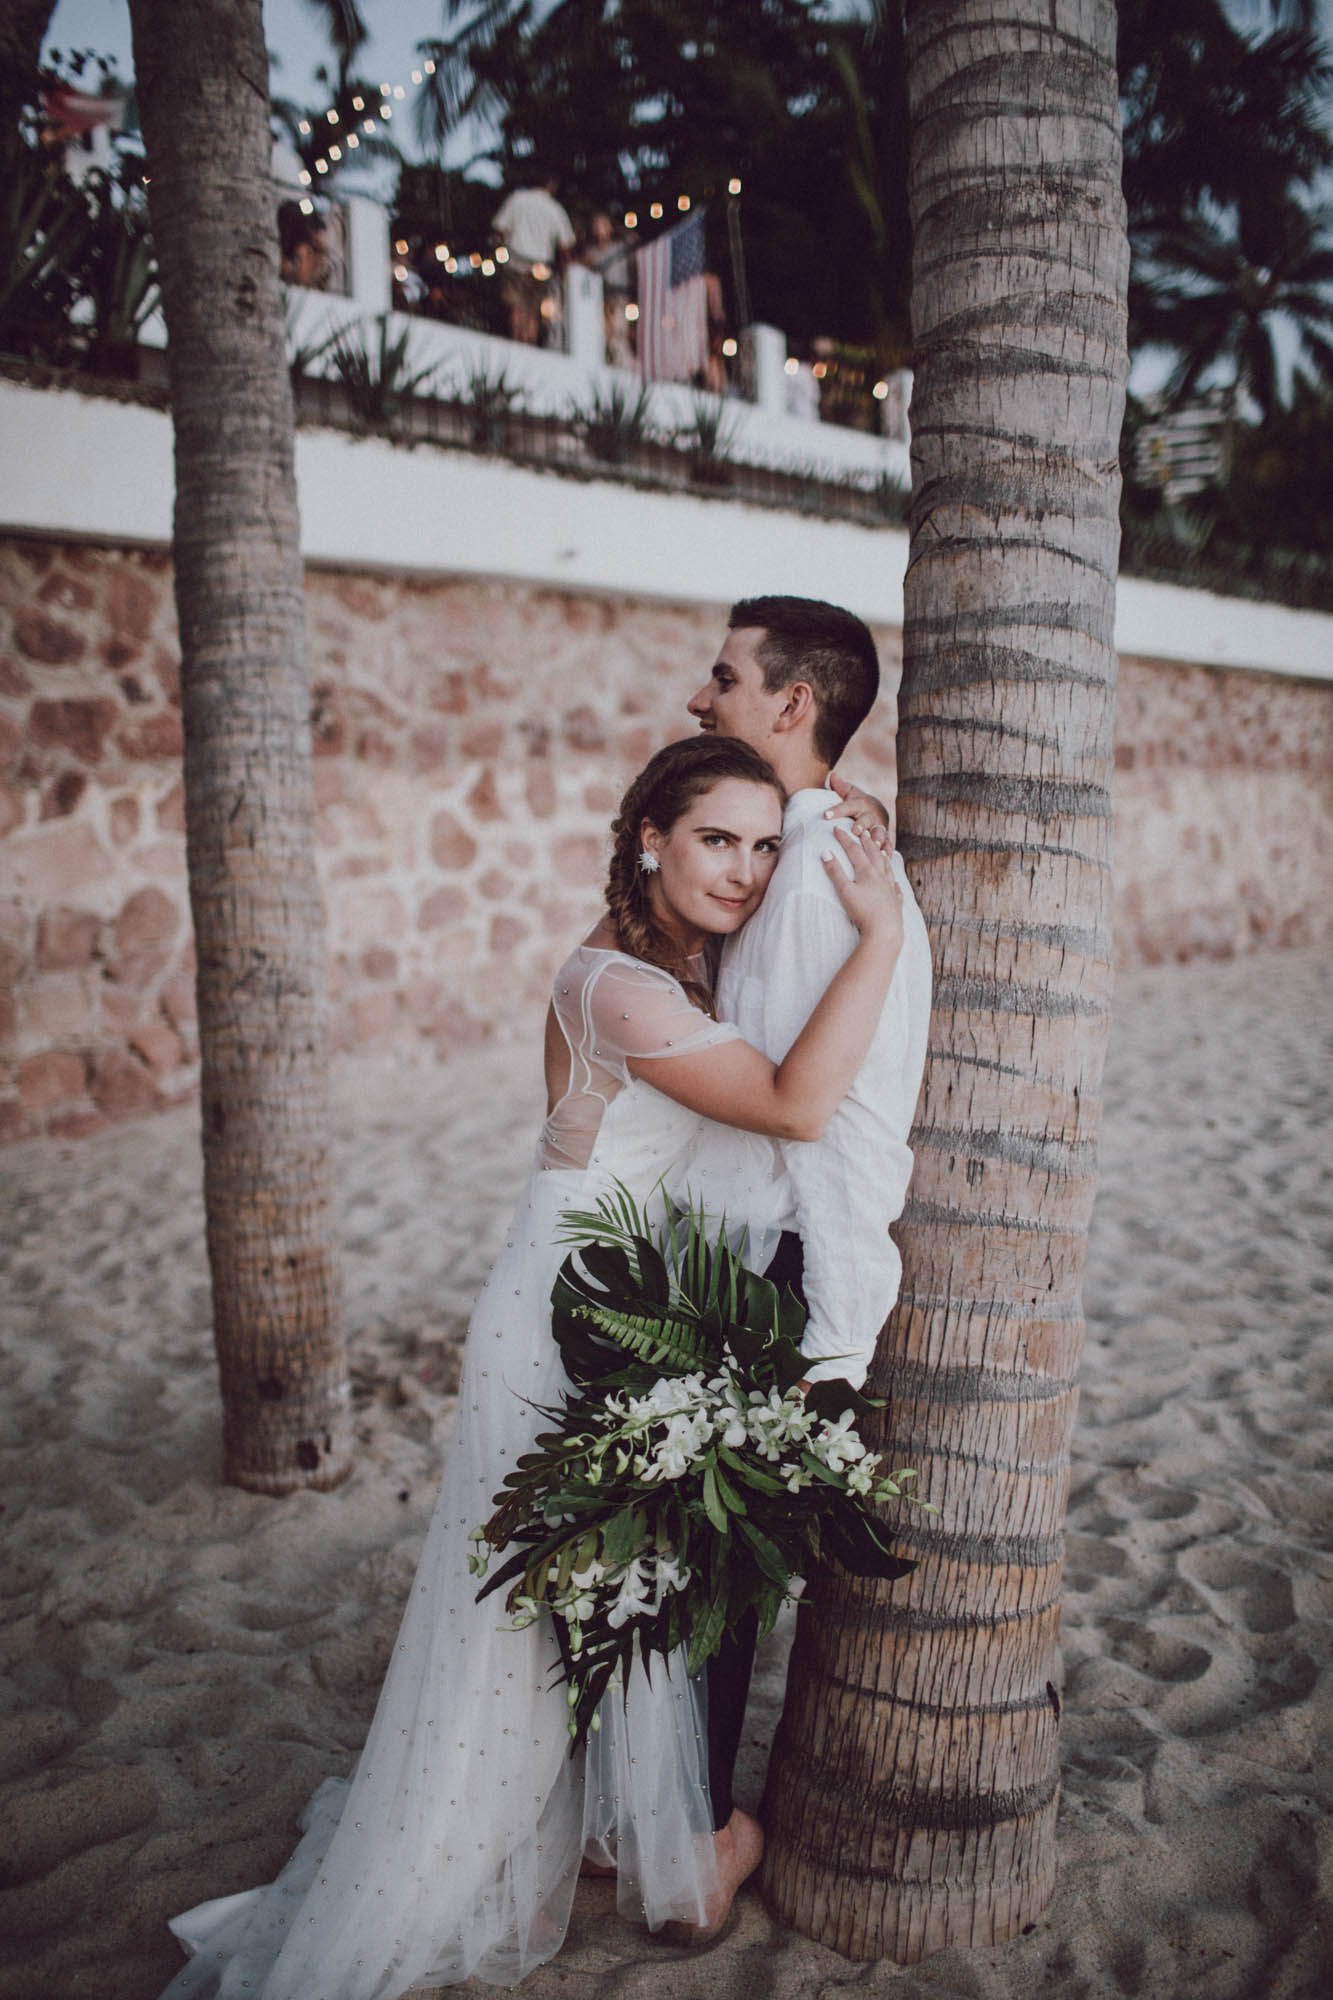 c_m_mexicowedding_destinationphotographer-88.jpg